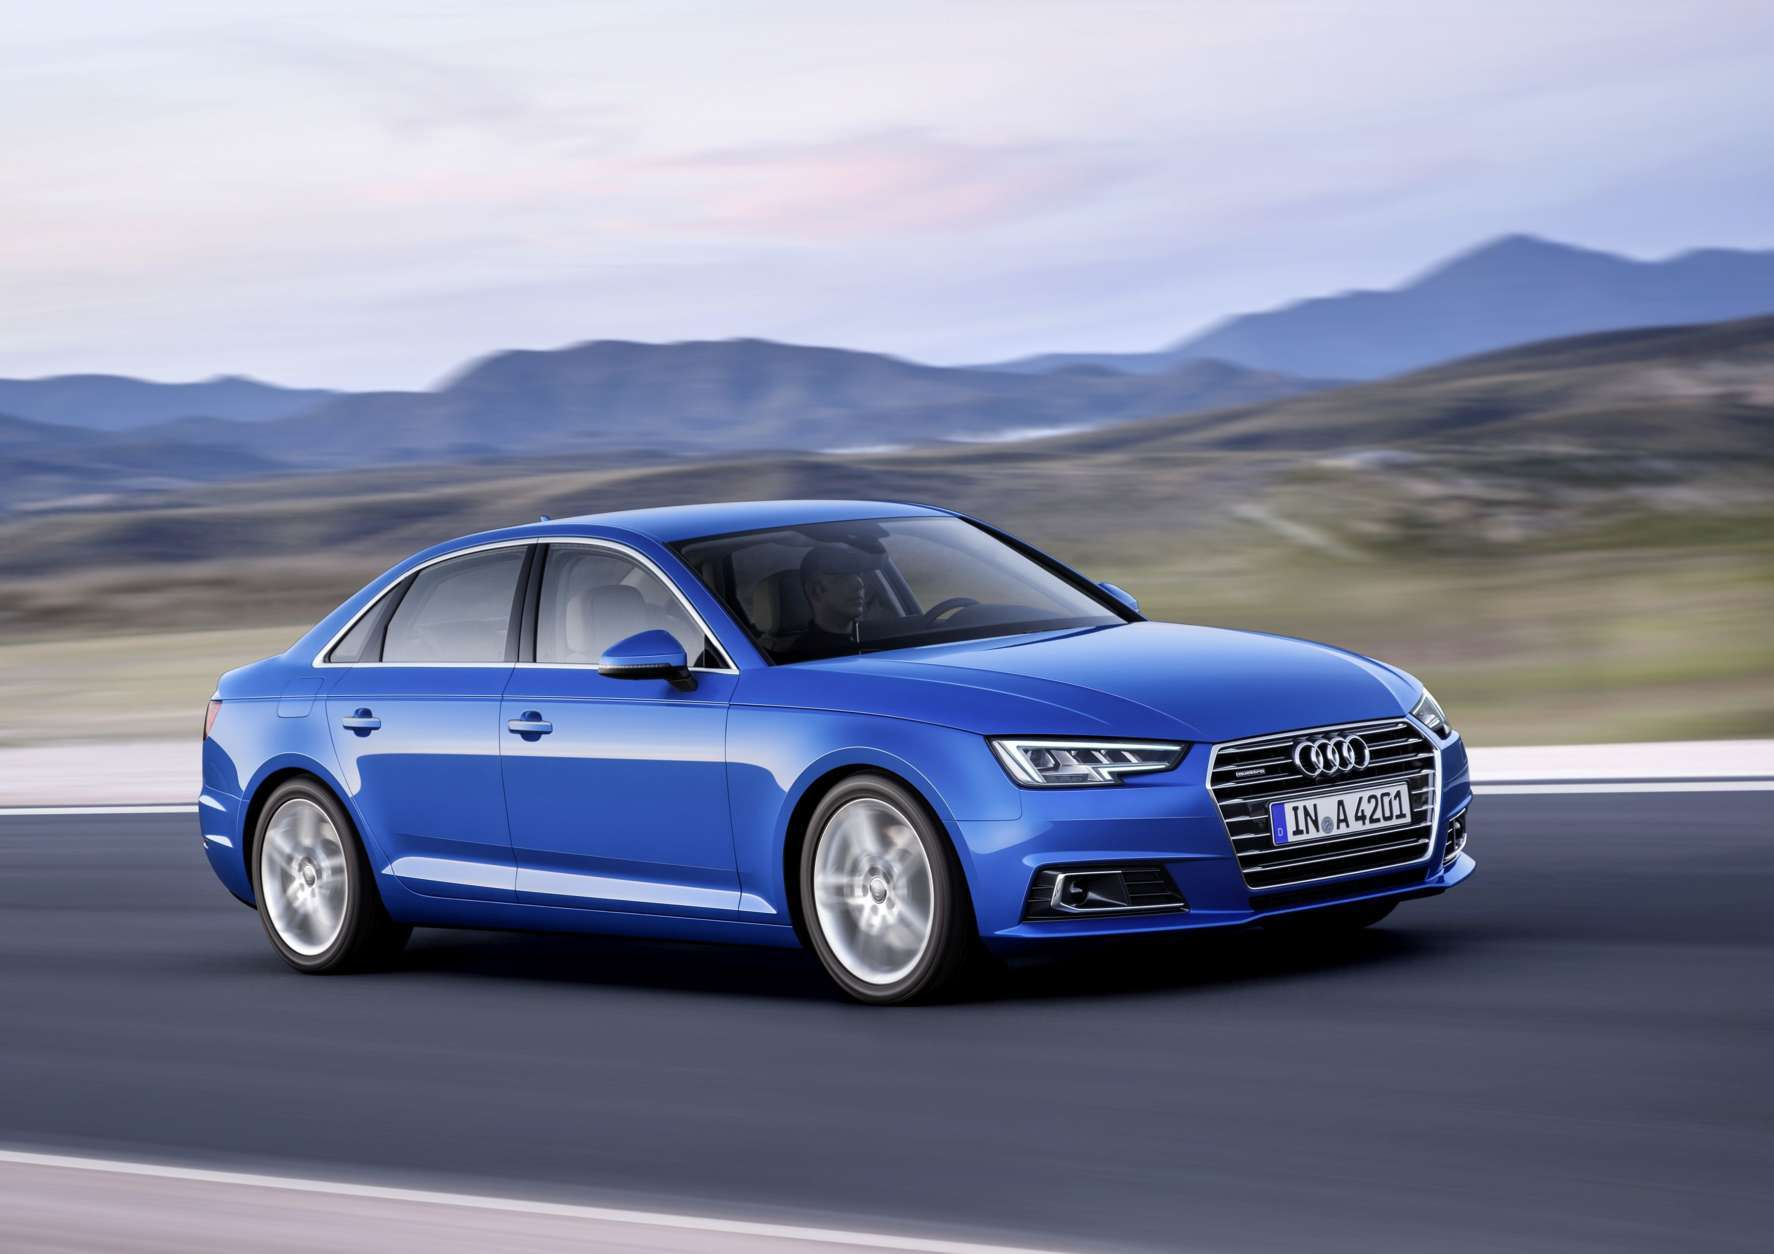 In this image released on Thursday, March 3, 2016, an Audi A4 in crystal effect paint finish Ara Blue is seen on the road. The Audi Group plans to launch more than 20 new or revised models and to continue its growth in 2016. Despite major challenges, the Ingolstadt-based company performed successfully last year and set a new record for unit sales with 1,803,246 automobiles. Press release and media available to download at www.apassignments.com/newsaktuell. (Audi AG via AP Images)